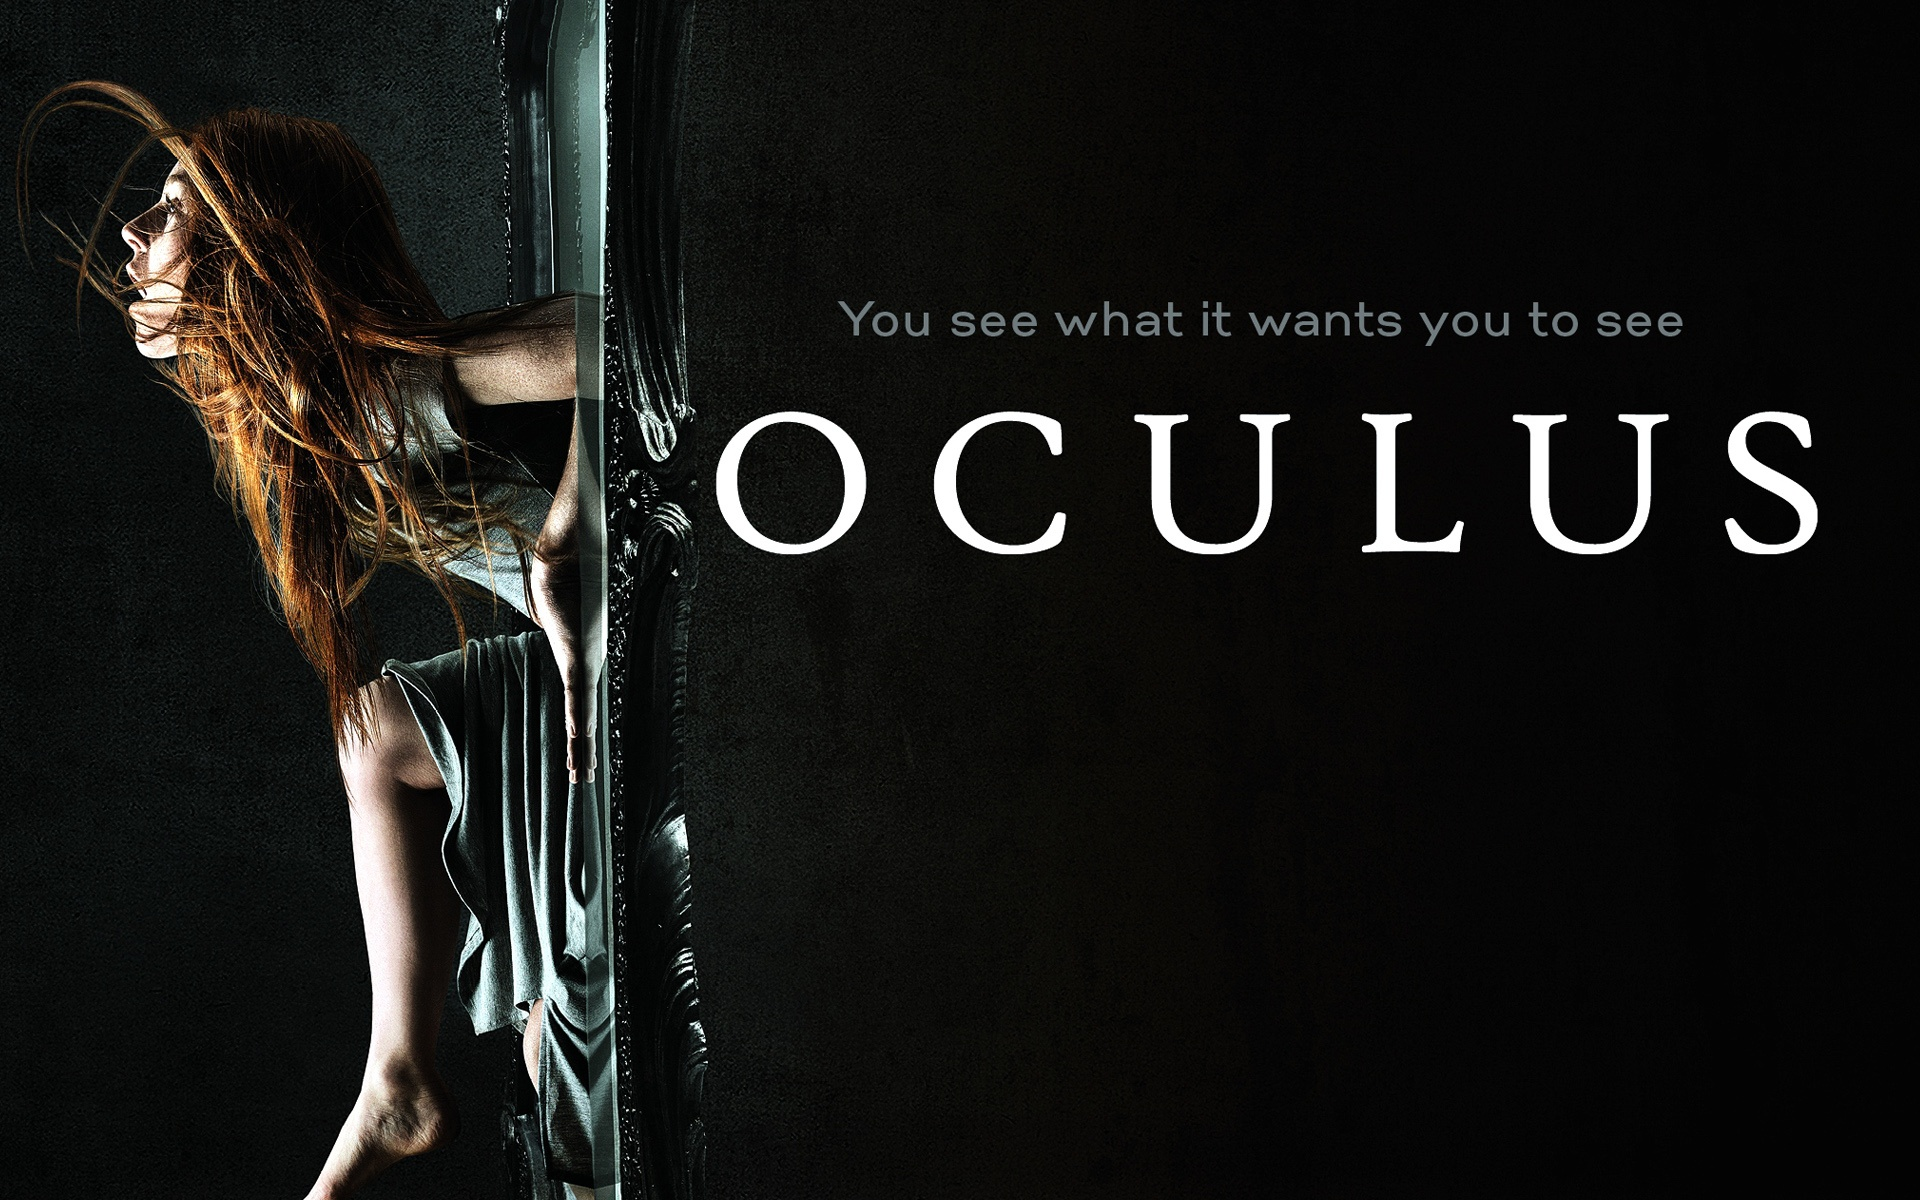 Oculus 2014 Horror Movie Wallpapers In Jpg Format For Free